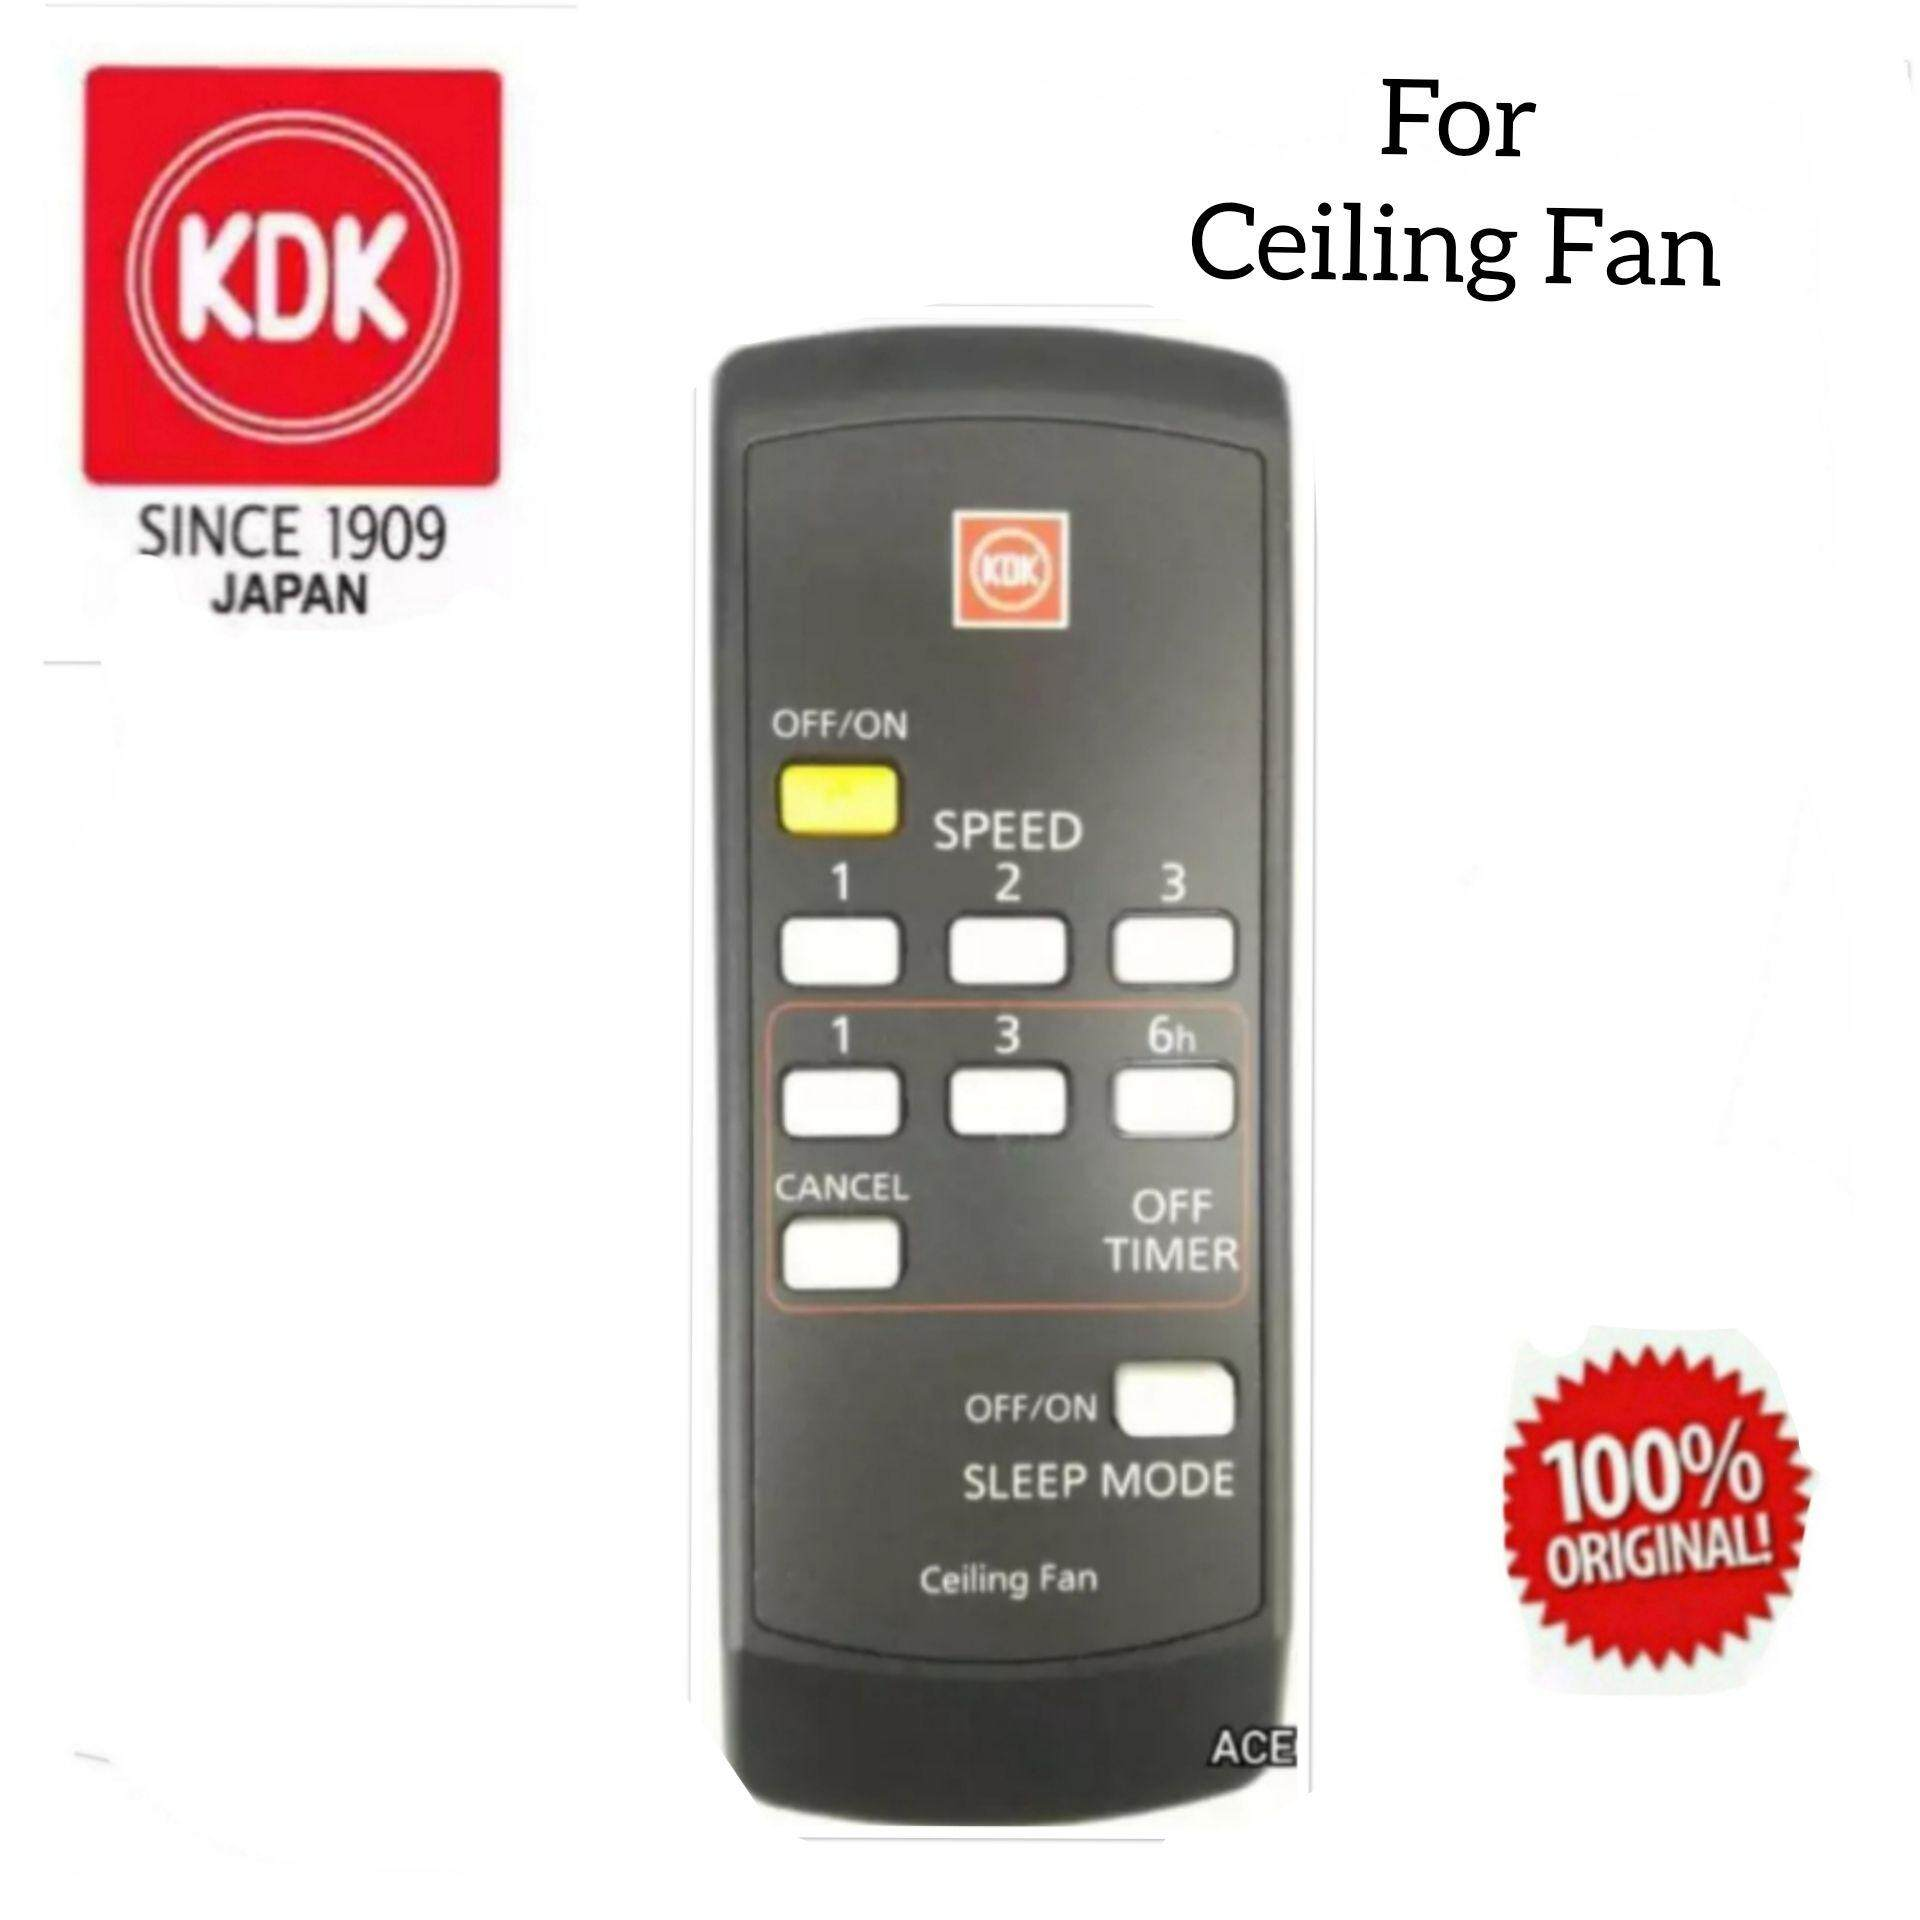 Fan Accessories Buy At Best Price In Malaysia Mixer Grinder Speed Control By Tv Remote Kdk Original Ceiling 4ck12m Use For K14y9k14x8k14y9